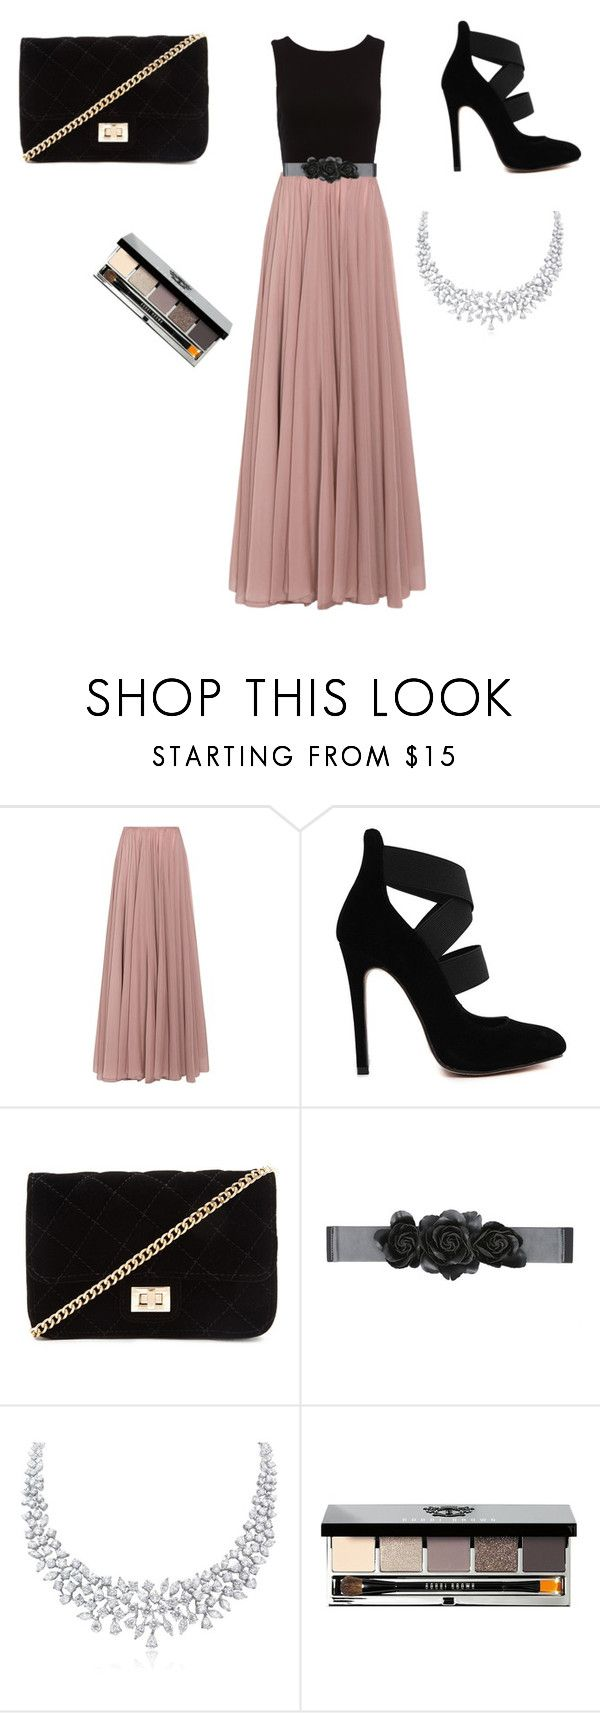 """"" by xxunicornxx12 ❤ liked on Polyvore featuring Lara Khoury, Forever 21, Bebe and Bobbi Brown Cosmetics"